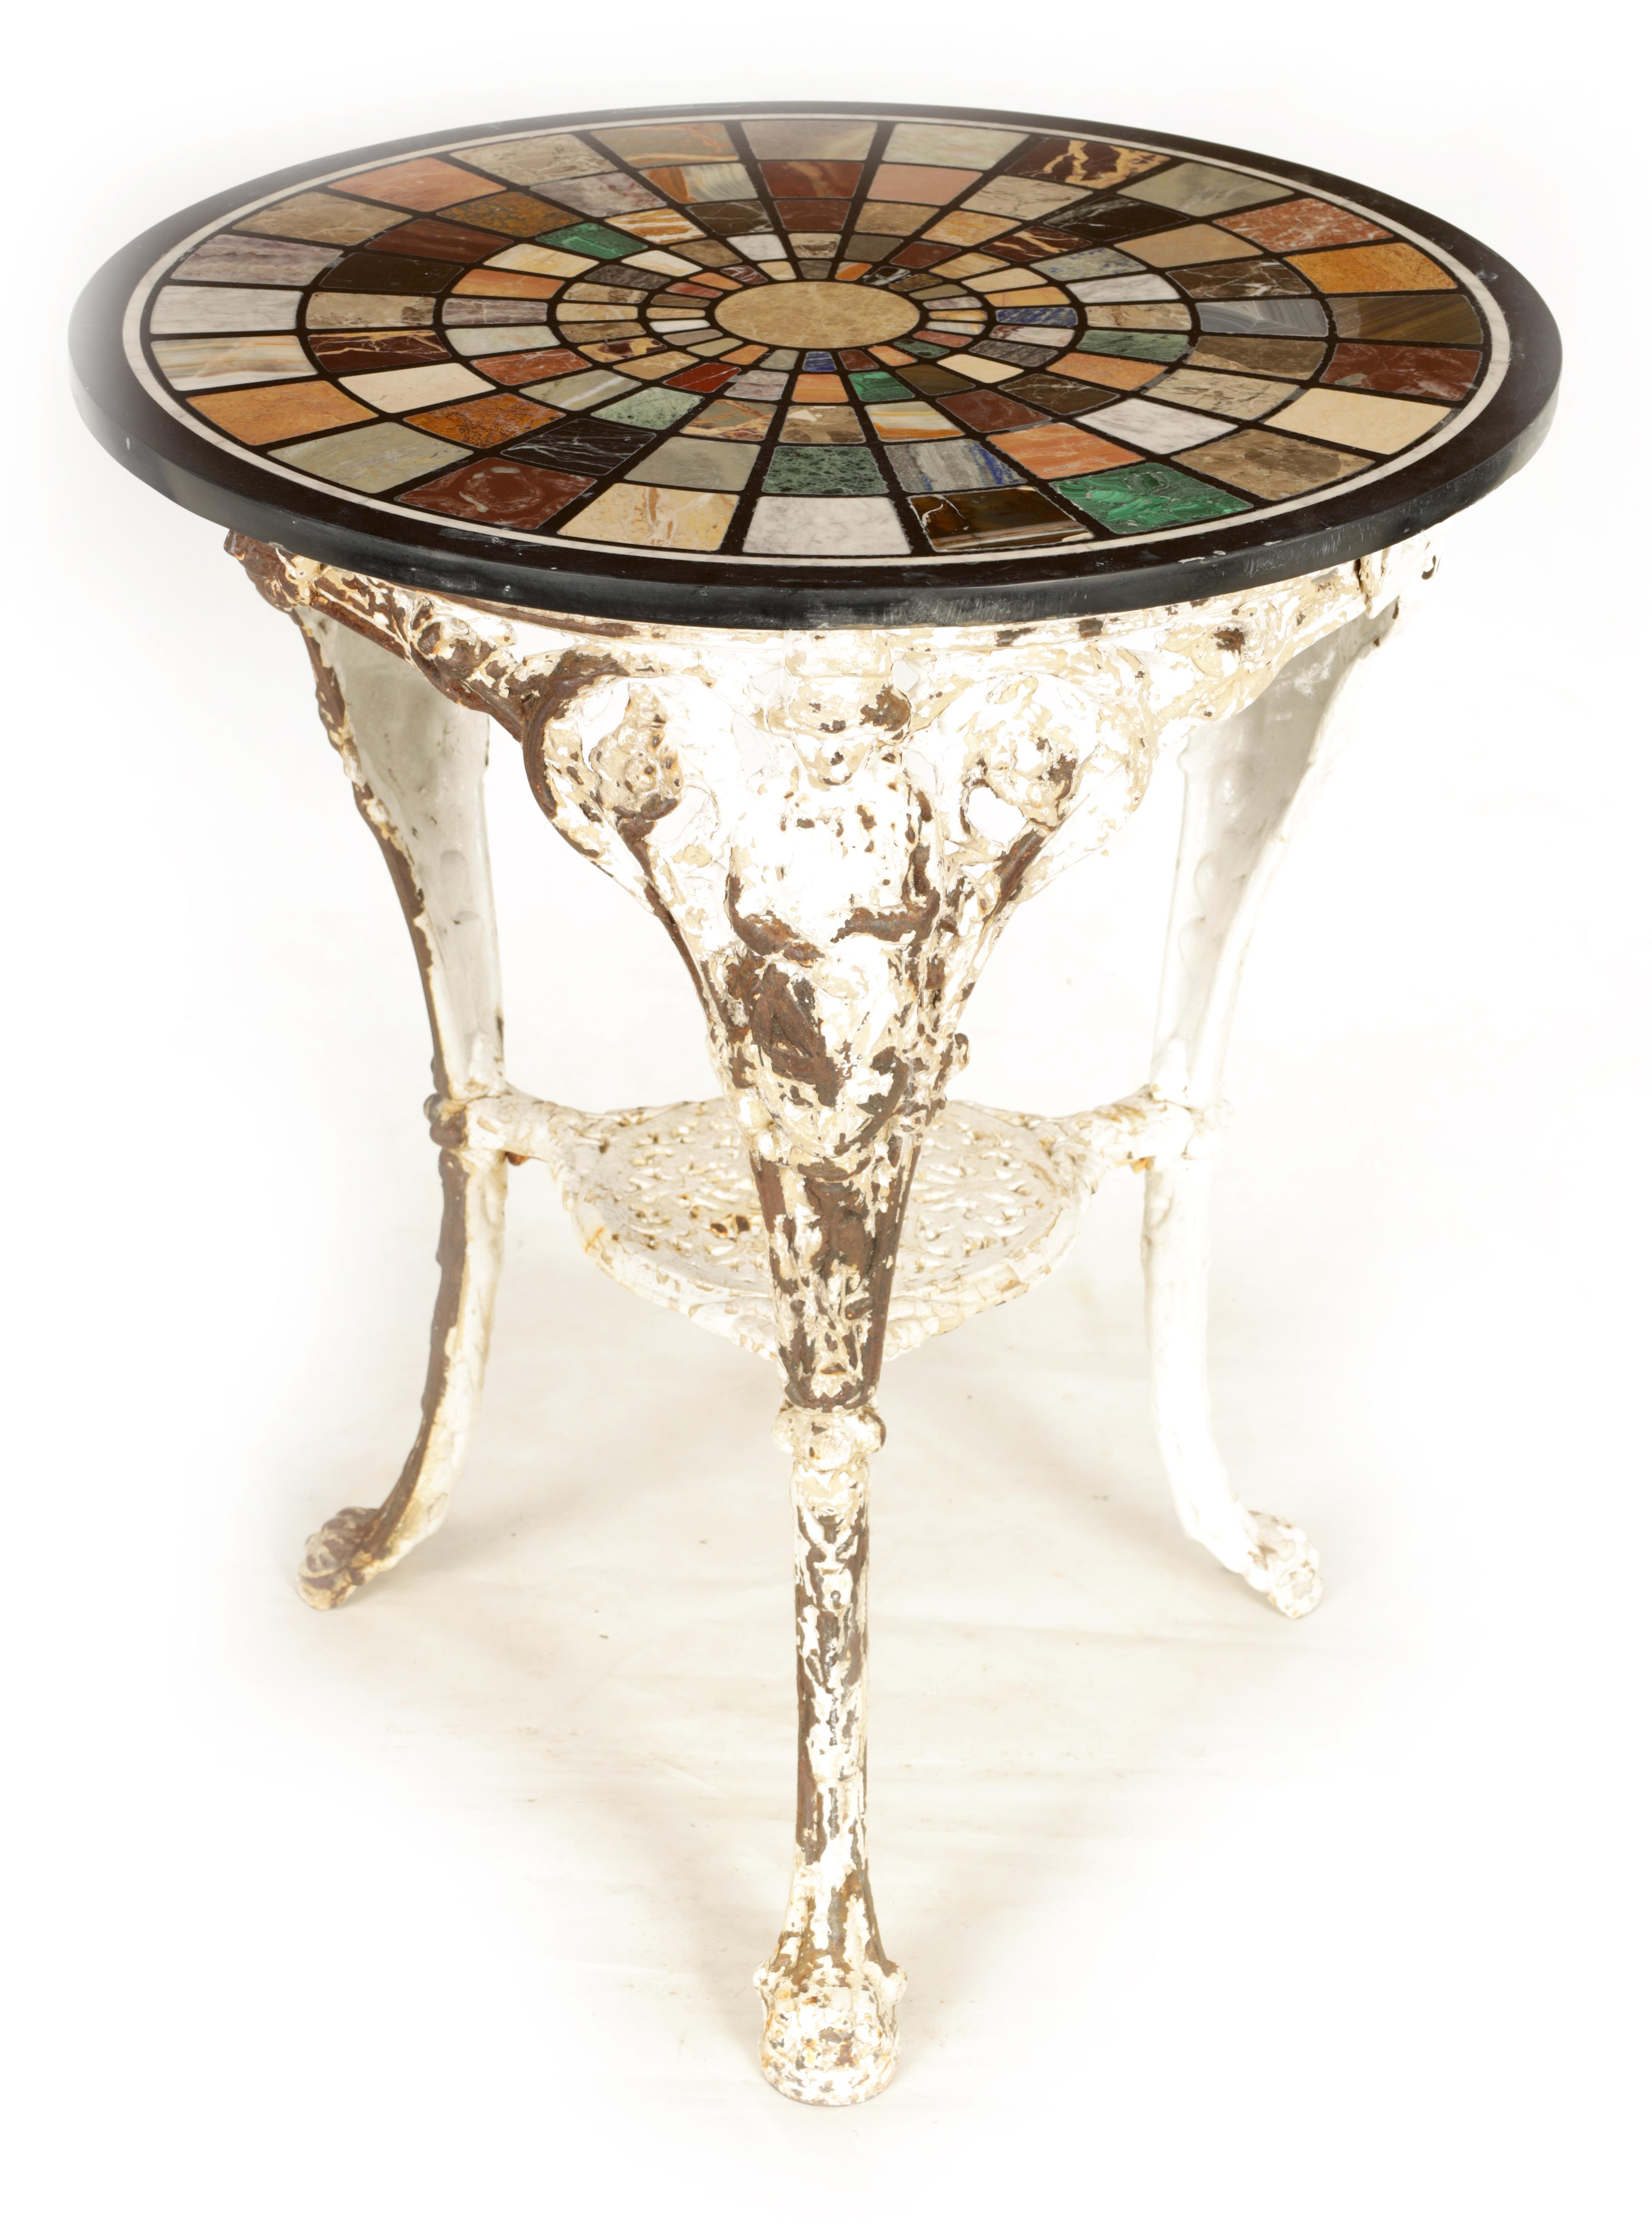 A 19TH CENTURY CAST IRON 'BRITTANIA' TABLE BASE WITH 20TH CENTURY SPECIMEN MARBLE TOP inlaid with